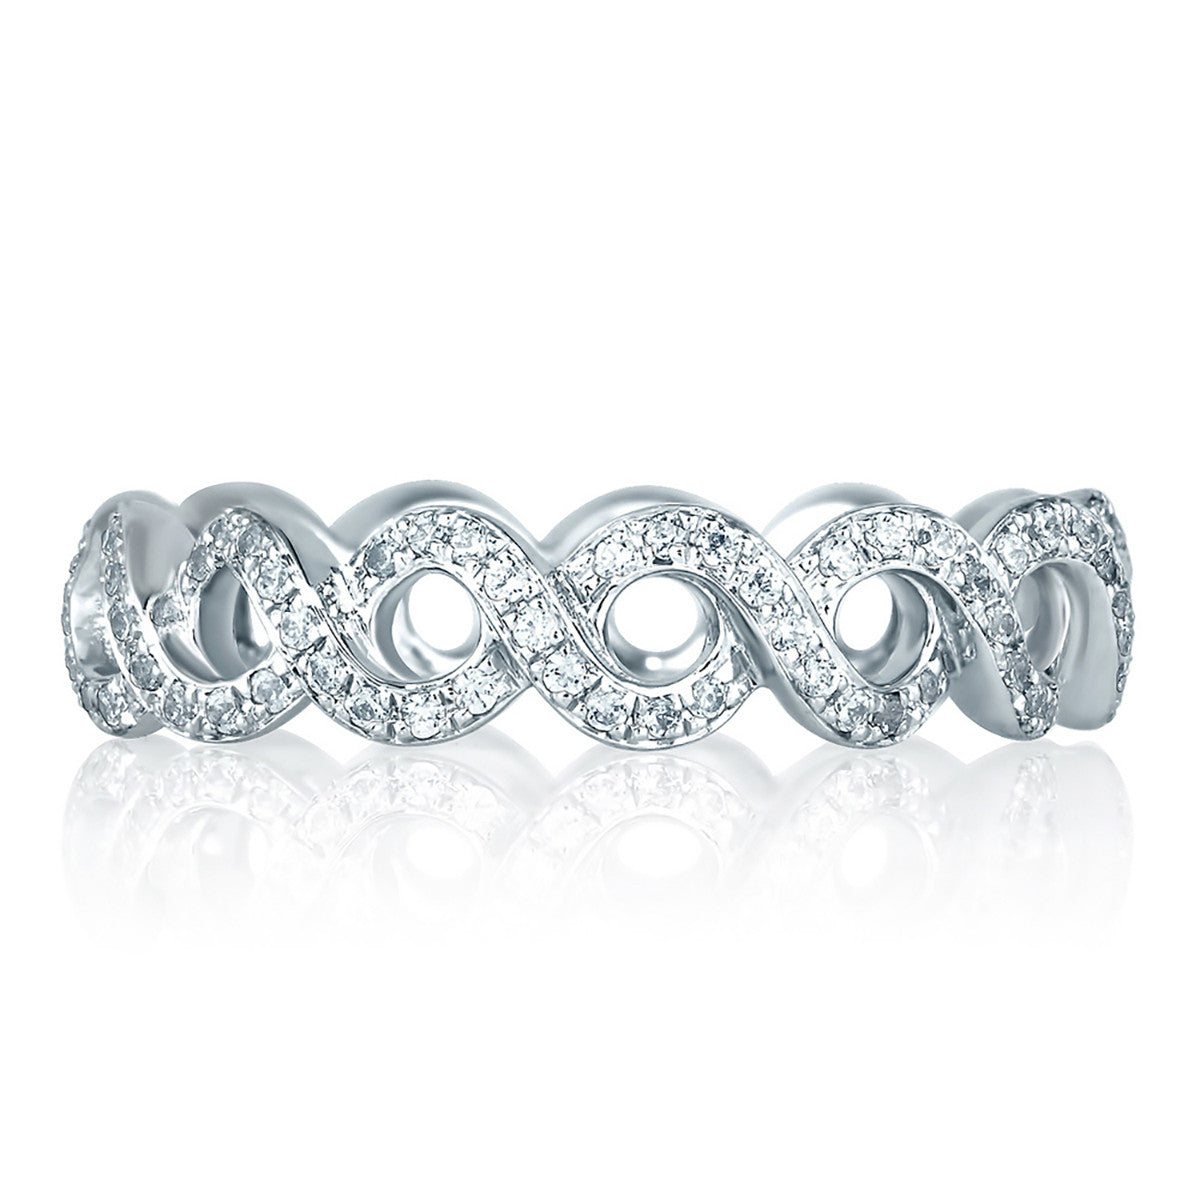 A. Jaffe Vine Motif Eternity Diamond Stackable Anniversary Ring WR0850/47